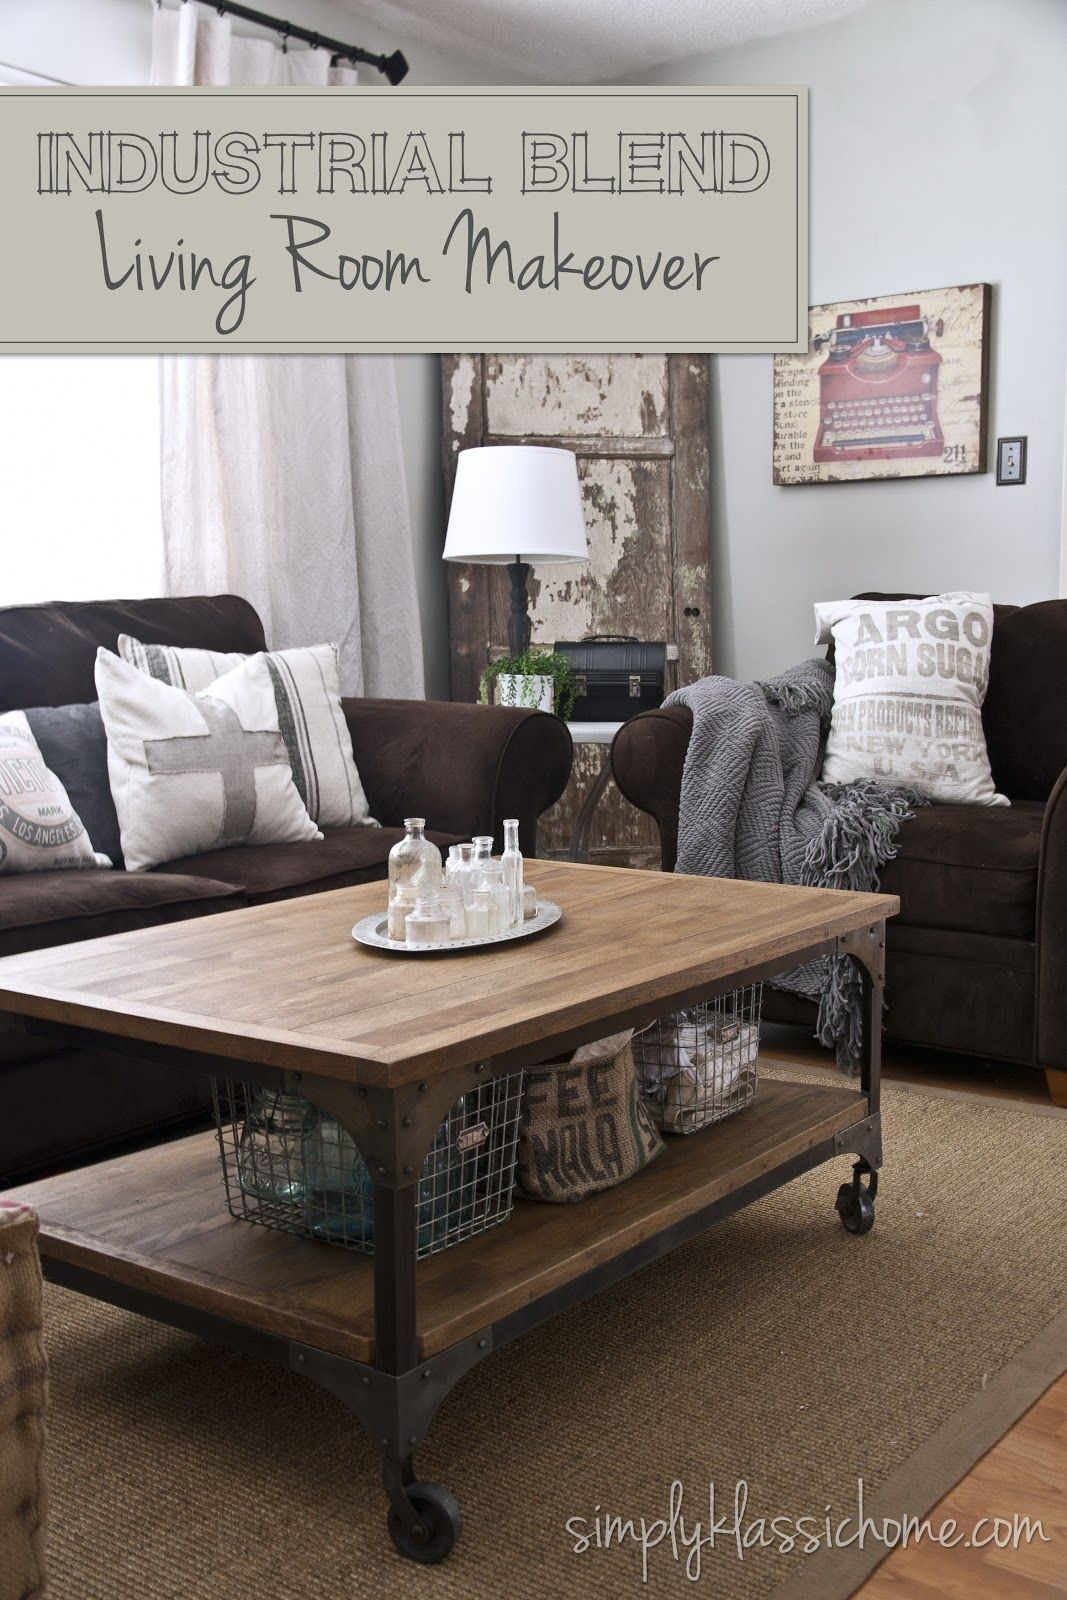 Industrial Living Room Ideas industrial blend living room makeover reveal | industrial, living